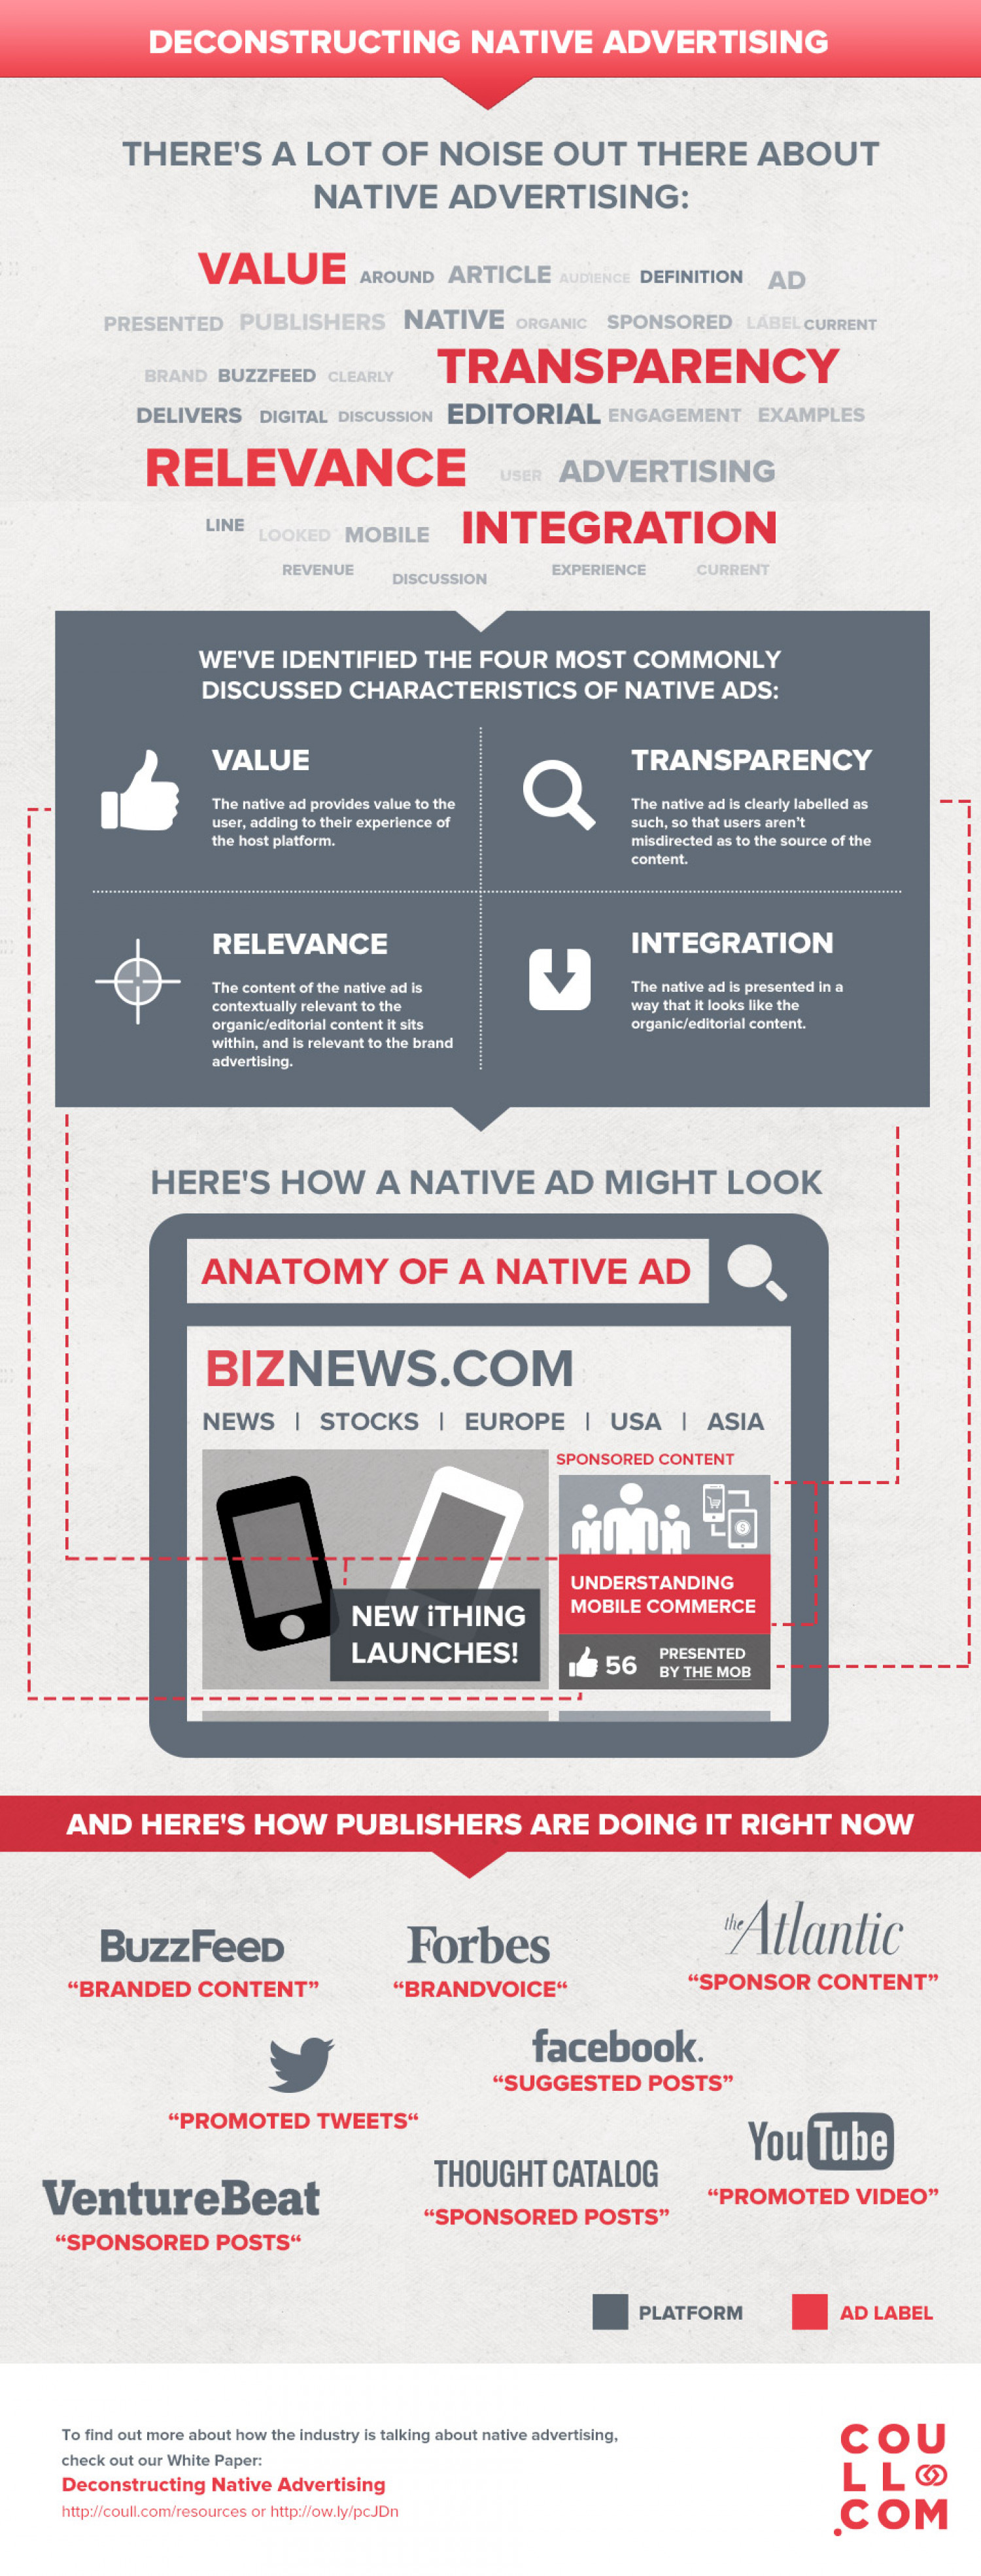 Deconstructing Native Advertising Infographic